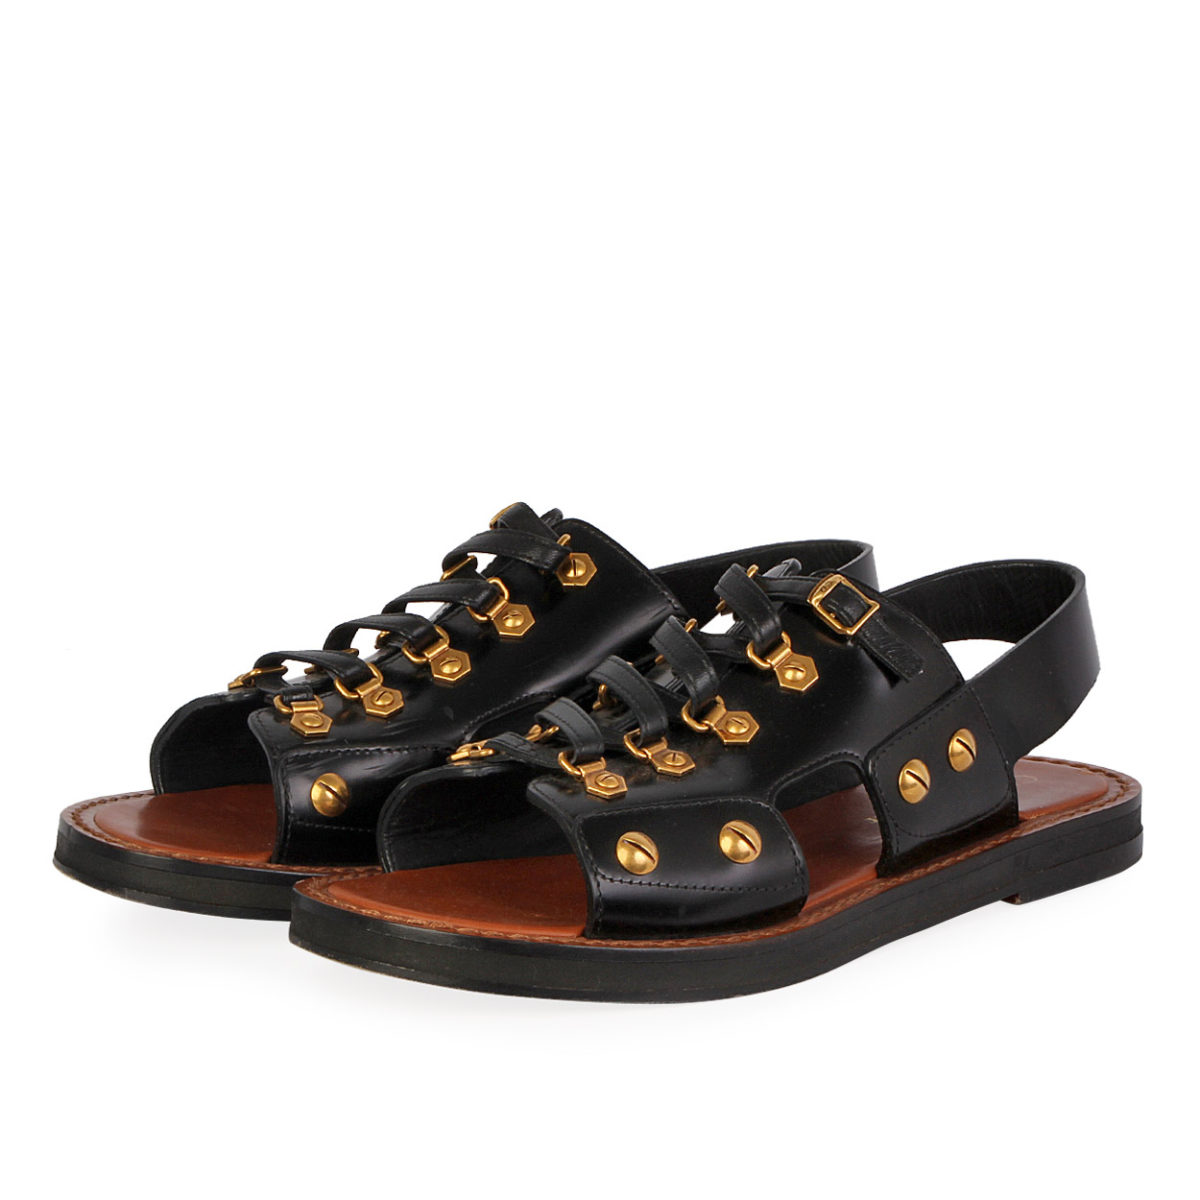 new arrival 3c7d1 75248 CHRISTIAN DIOR Leather Wildior Flat Sandals Black - S: 37 (4)